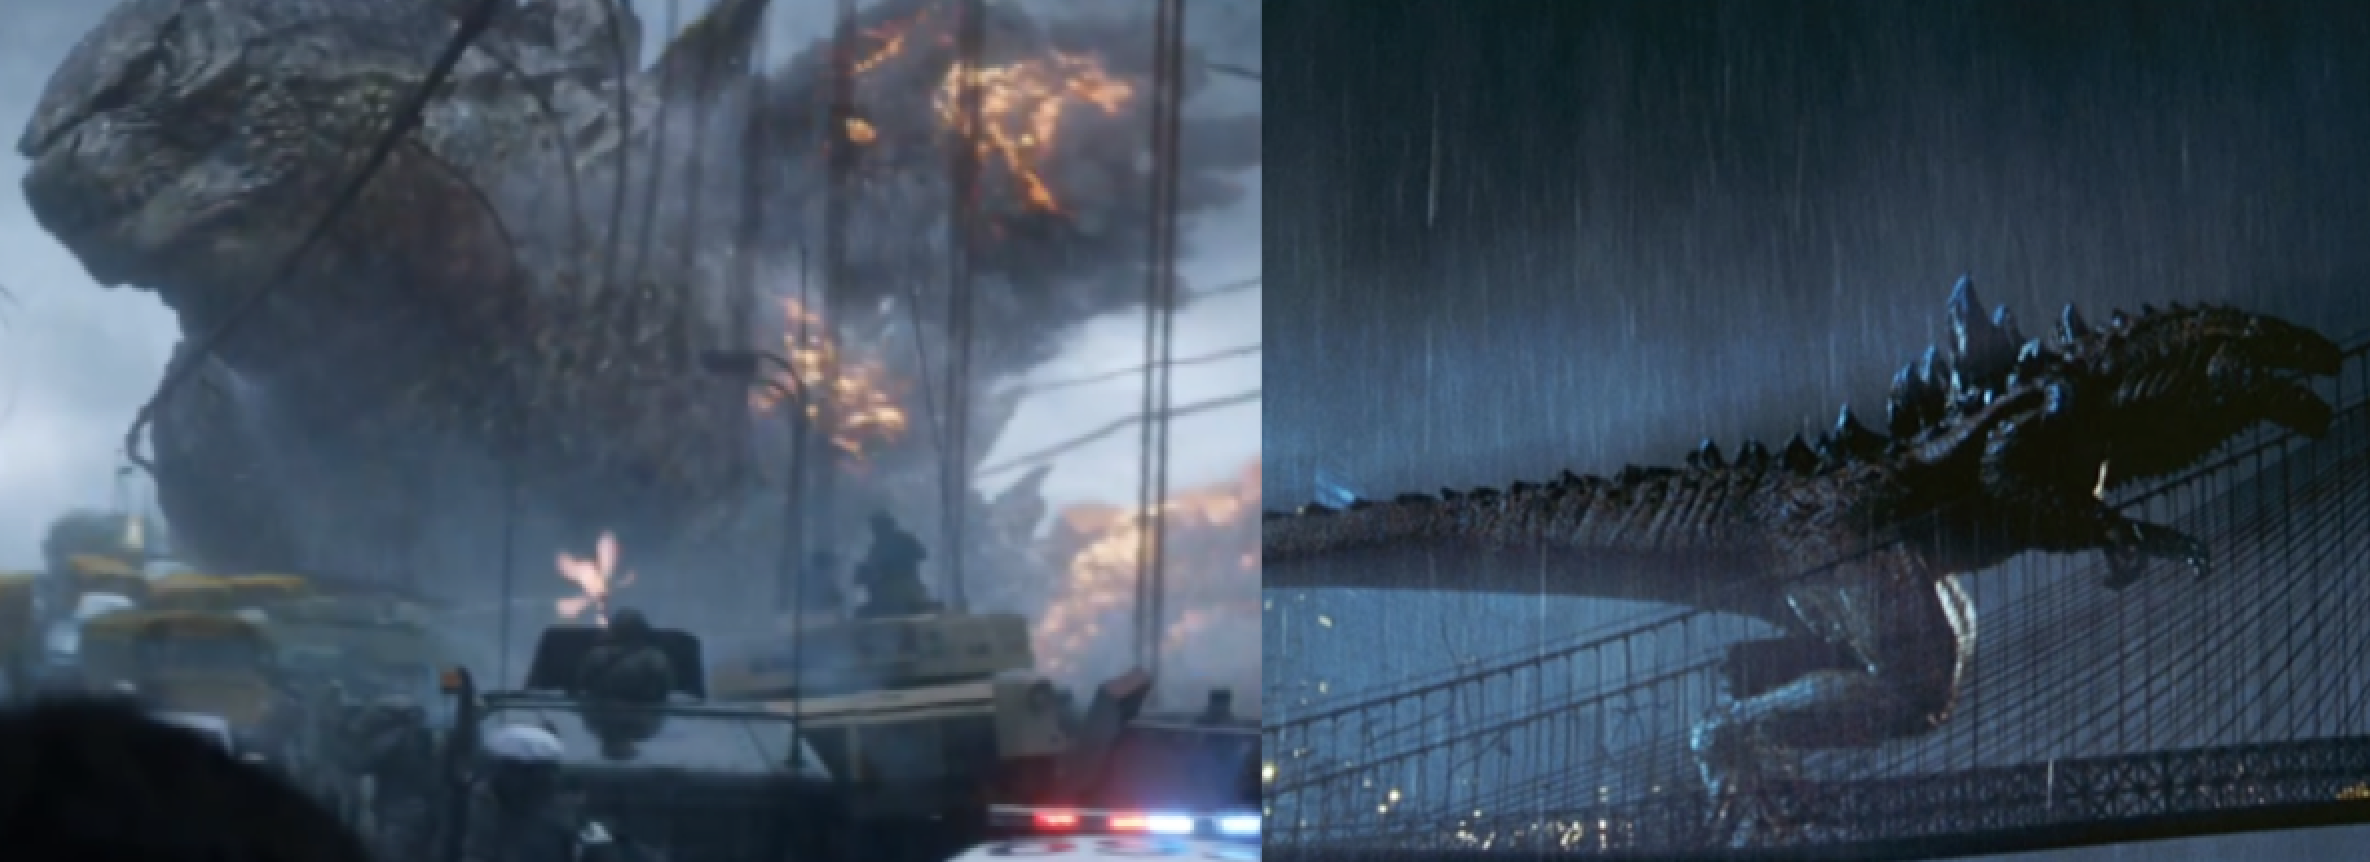 Godzilla (2014) – Top 5 Things - 718.1KB